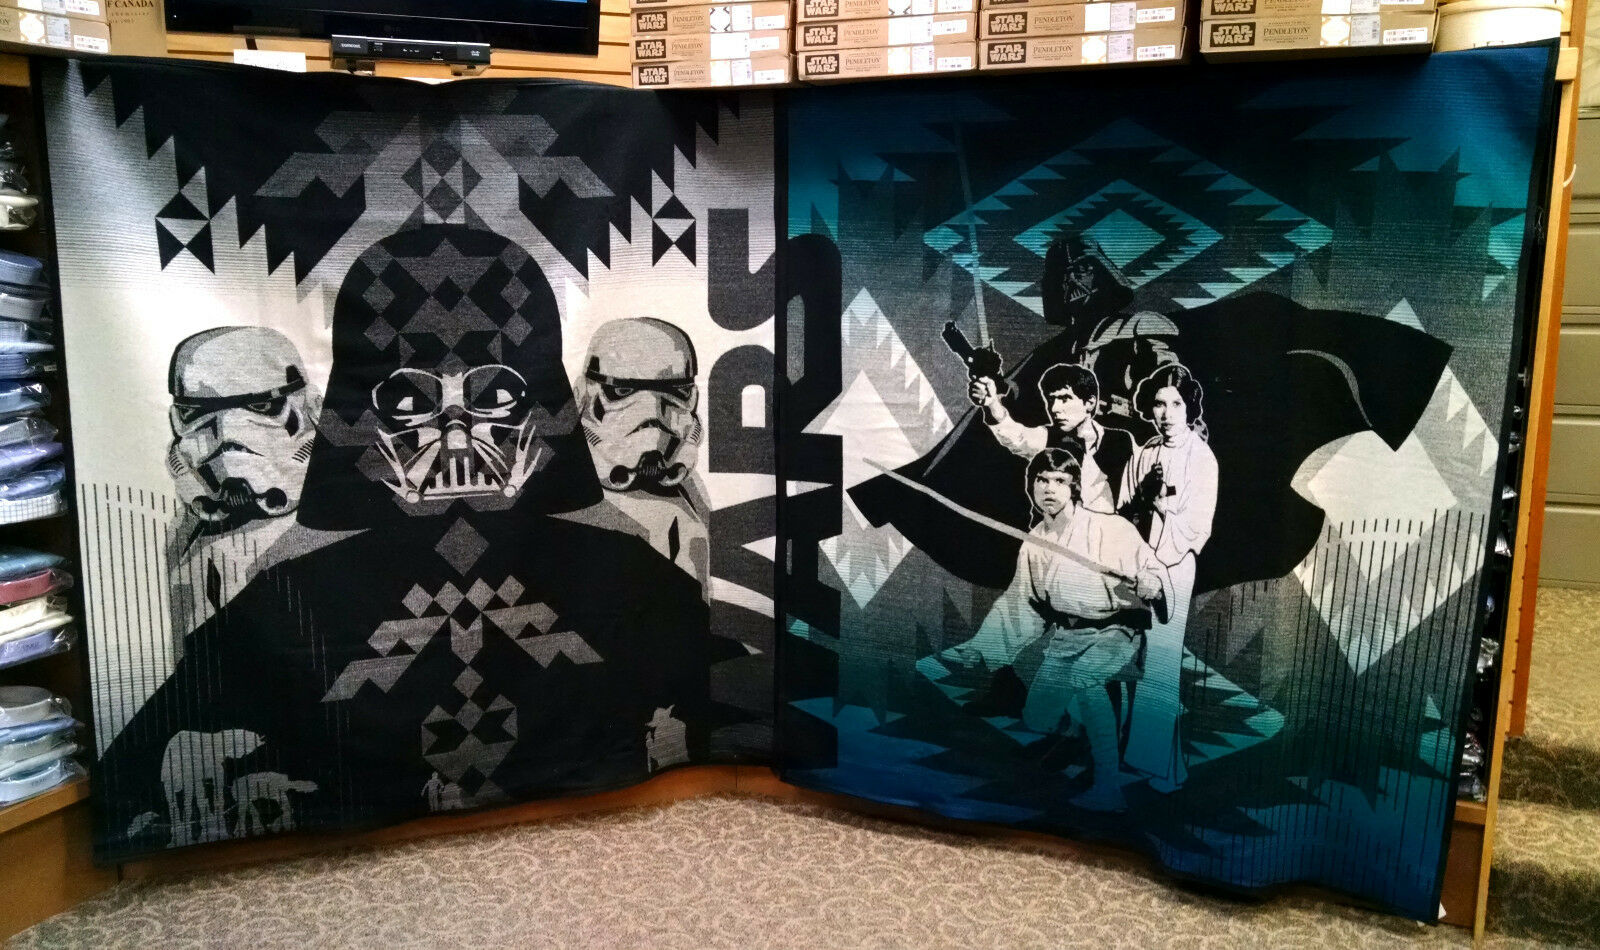 Star Wars Pendleton Blankets 4 Piece Limited Edition Set New Rare Hope Jedi Wool